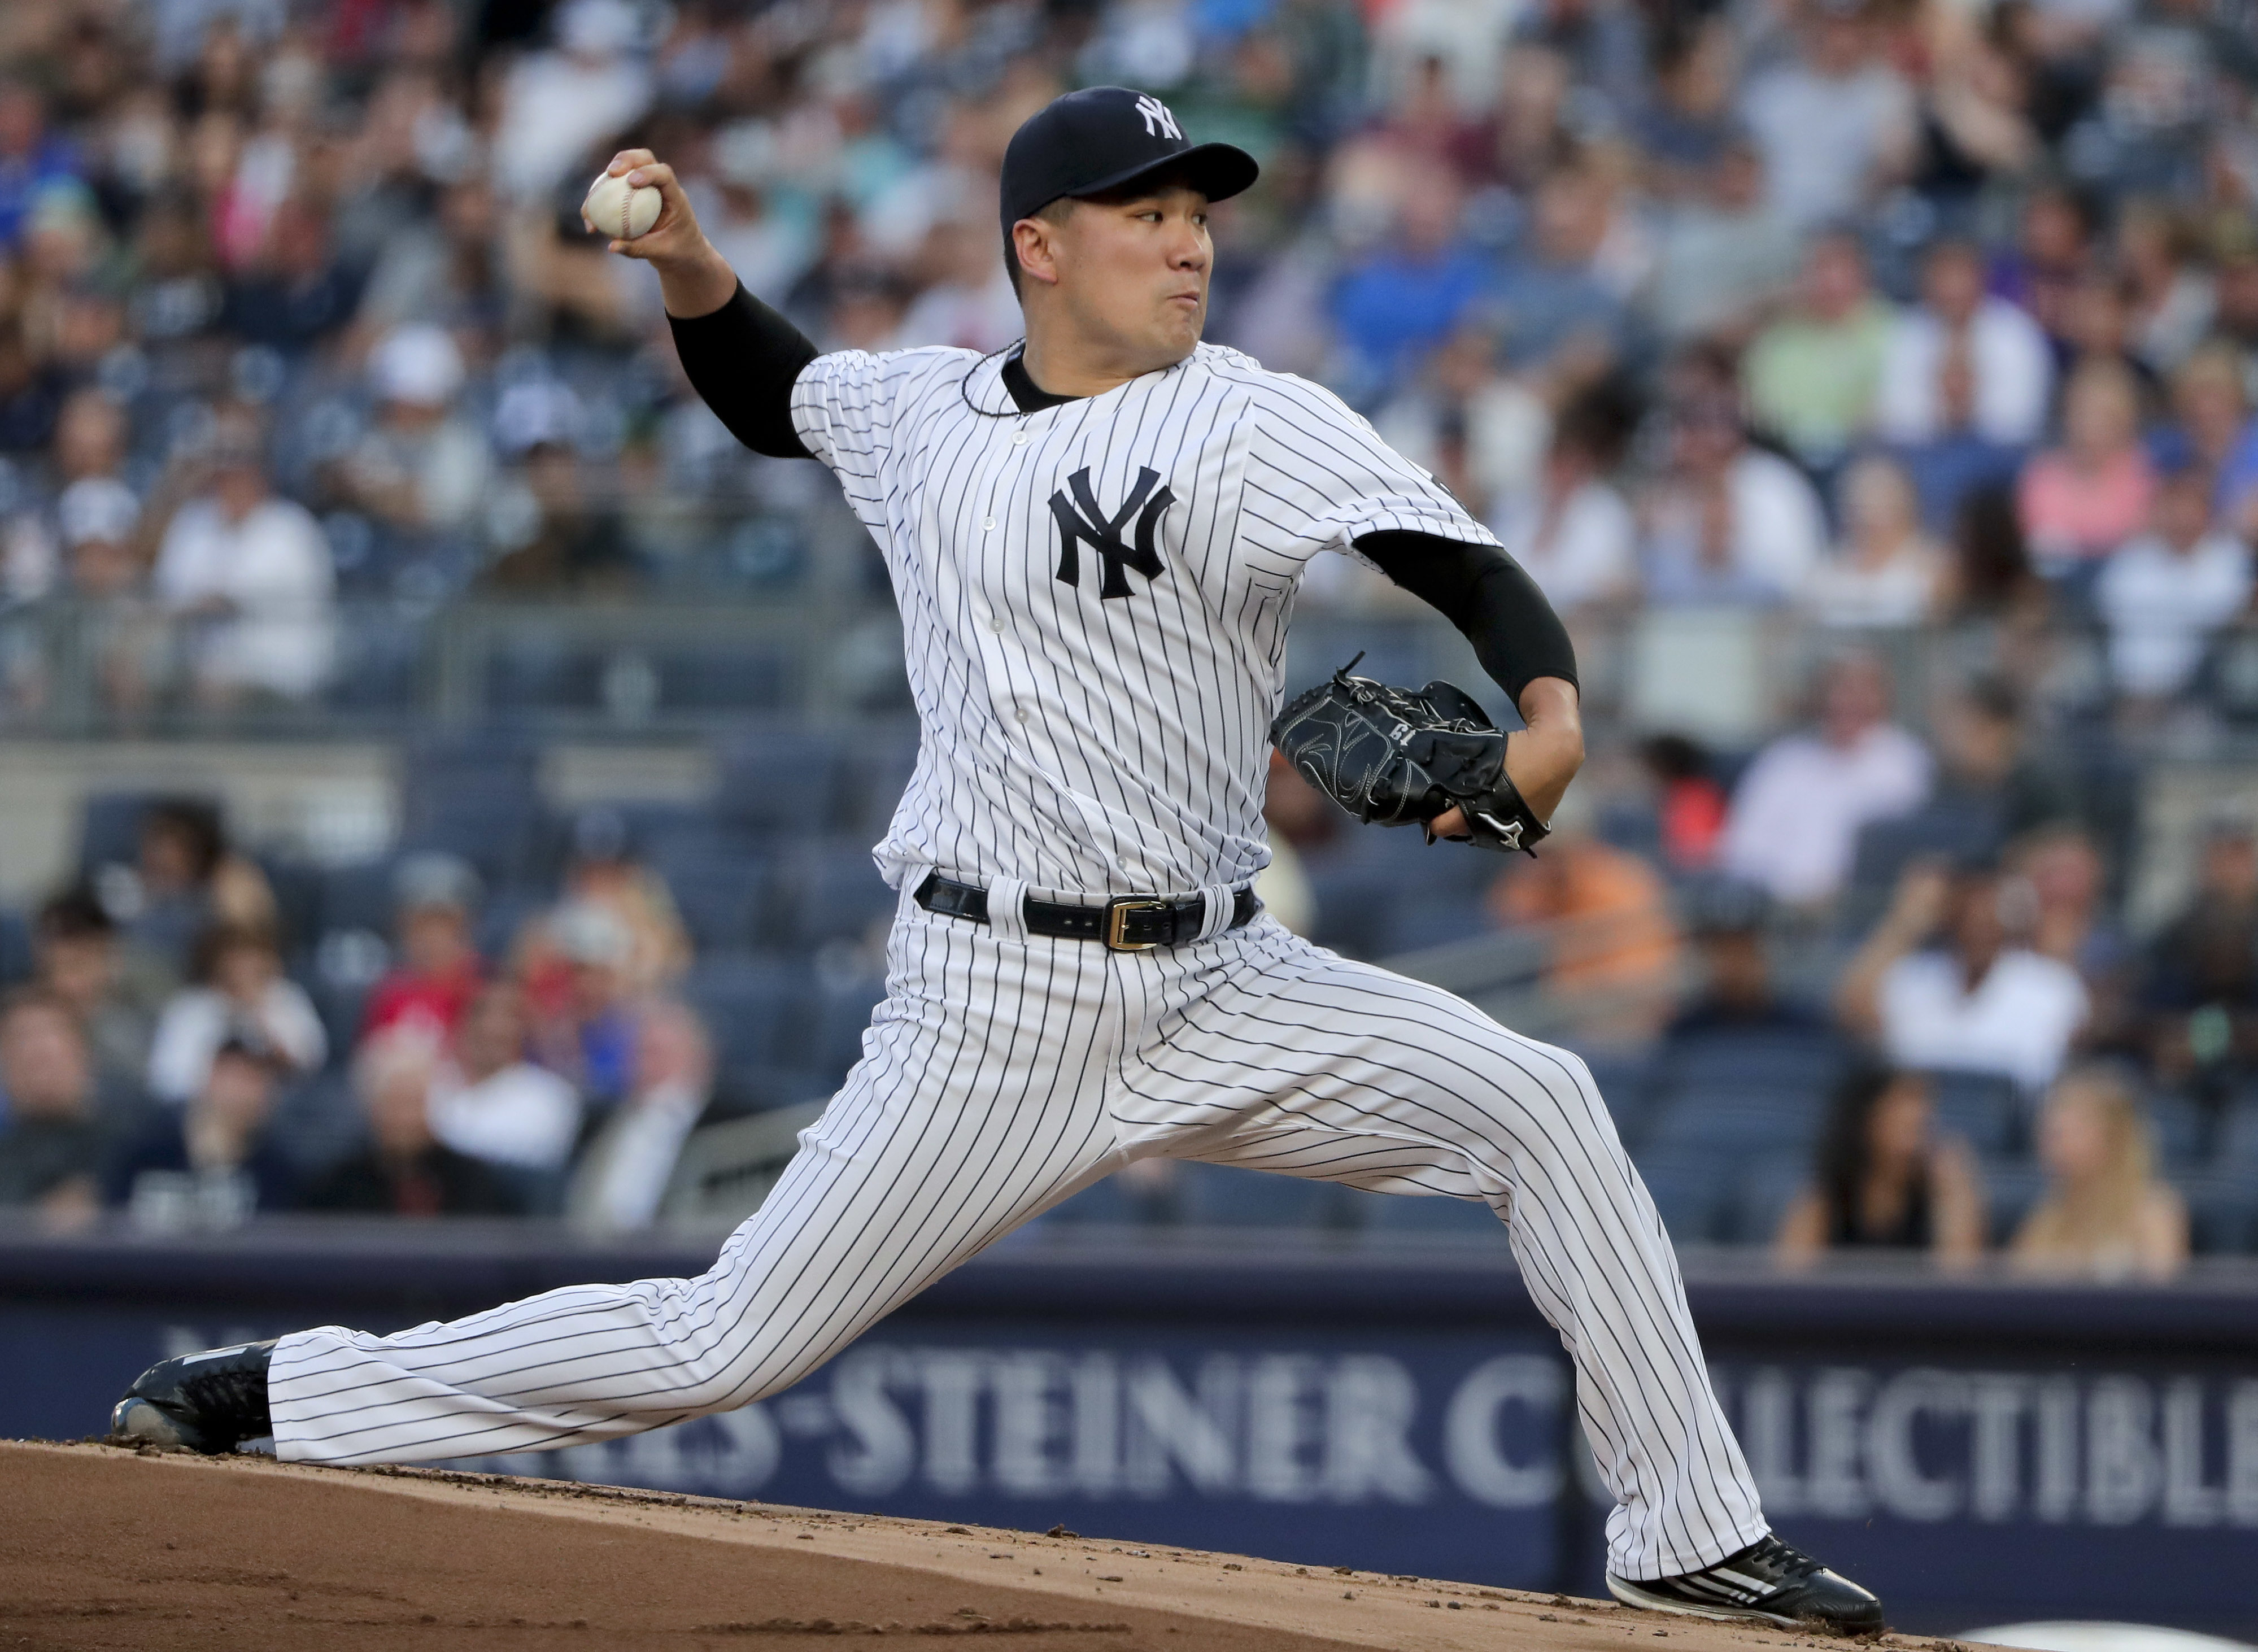 New York Yankees starting pitcher Masahiro Tanaka delivers against the San Francisco Giants during the first inning of a baseball game Friday, July 22, 2016, in New York. (AP Photo/Julie Jacobson)